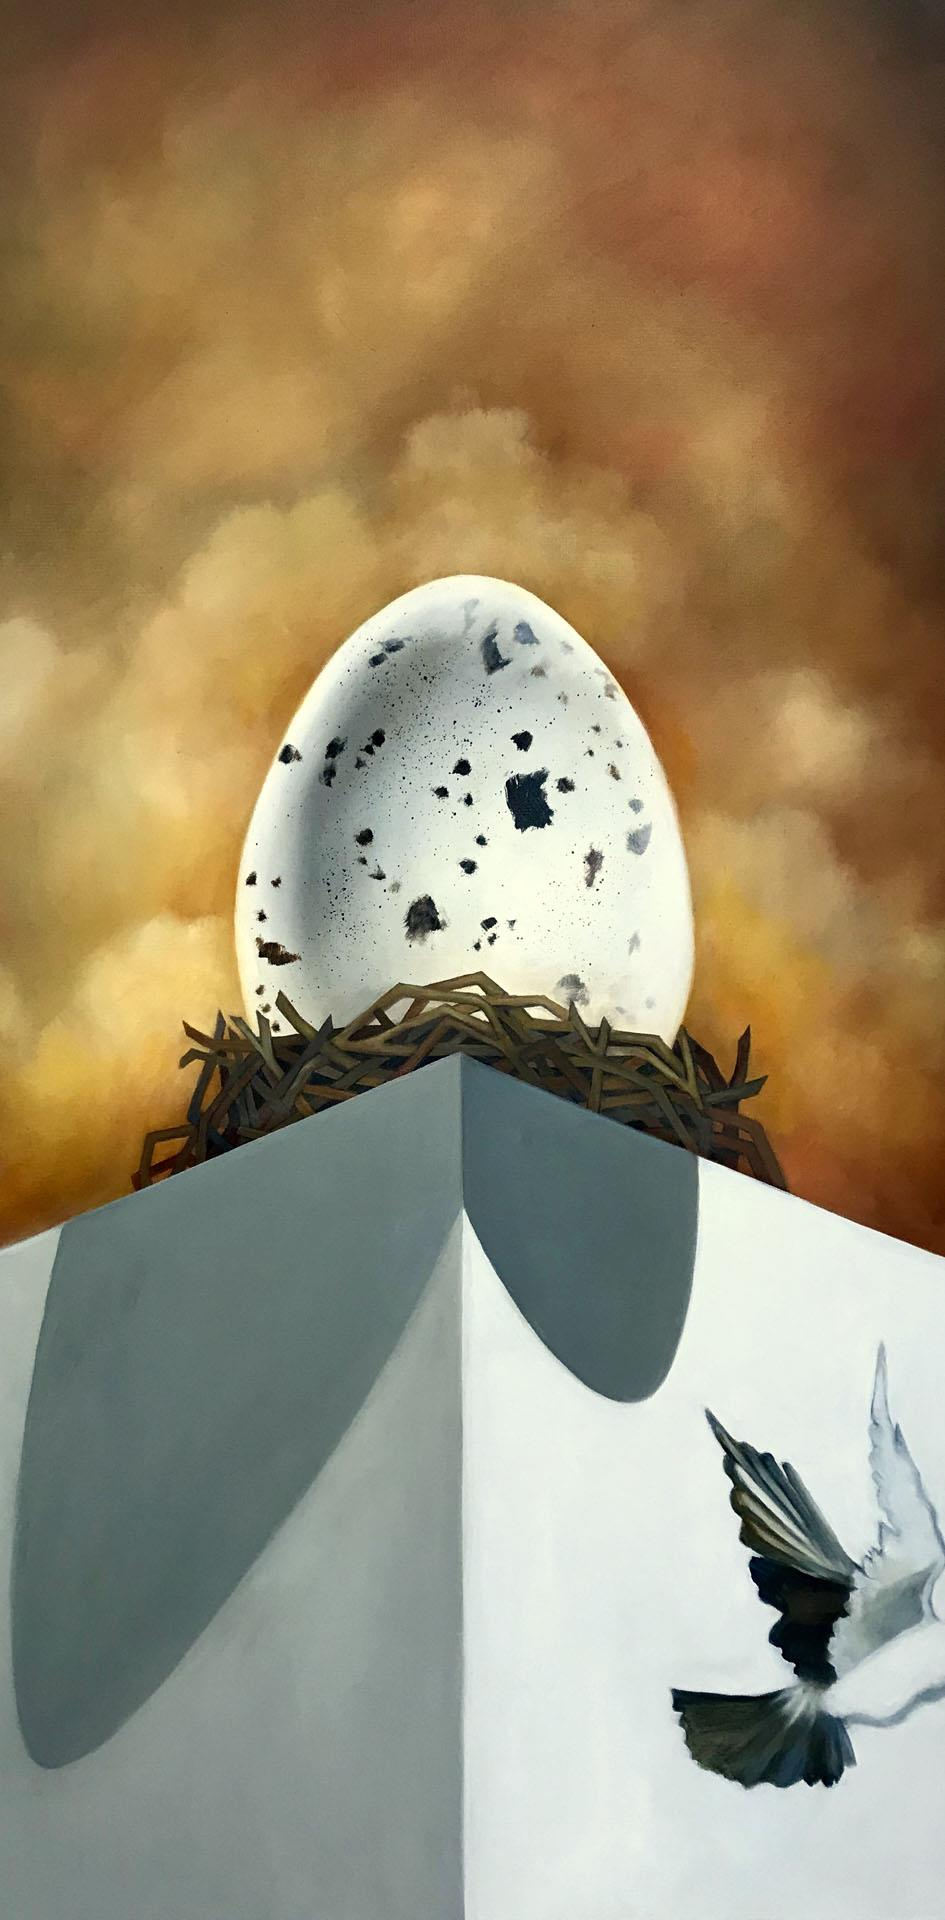 painting of large spotted egg in nest sitting on top of pedestal